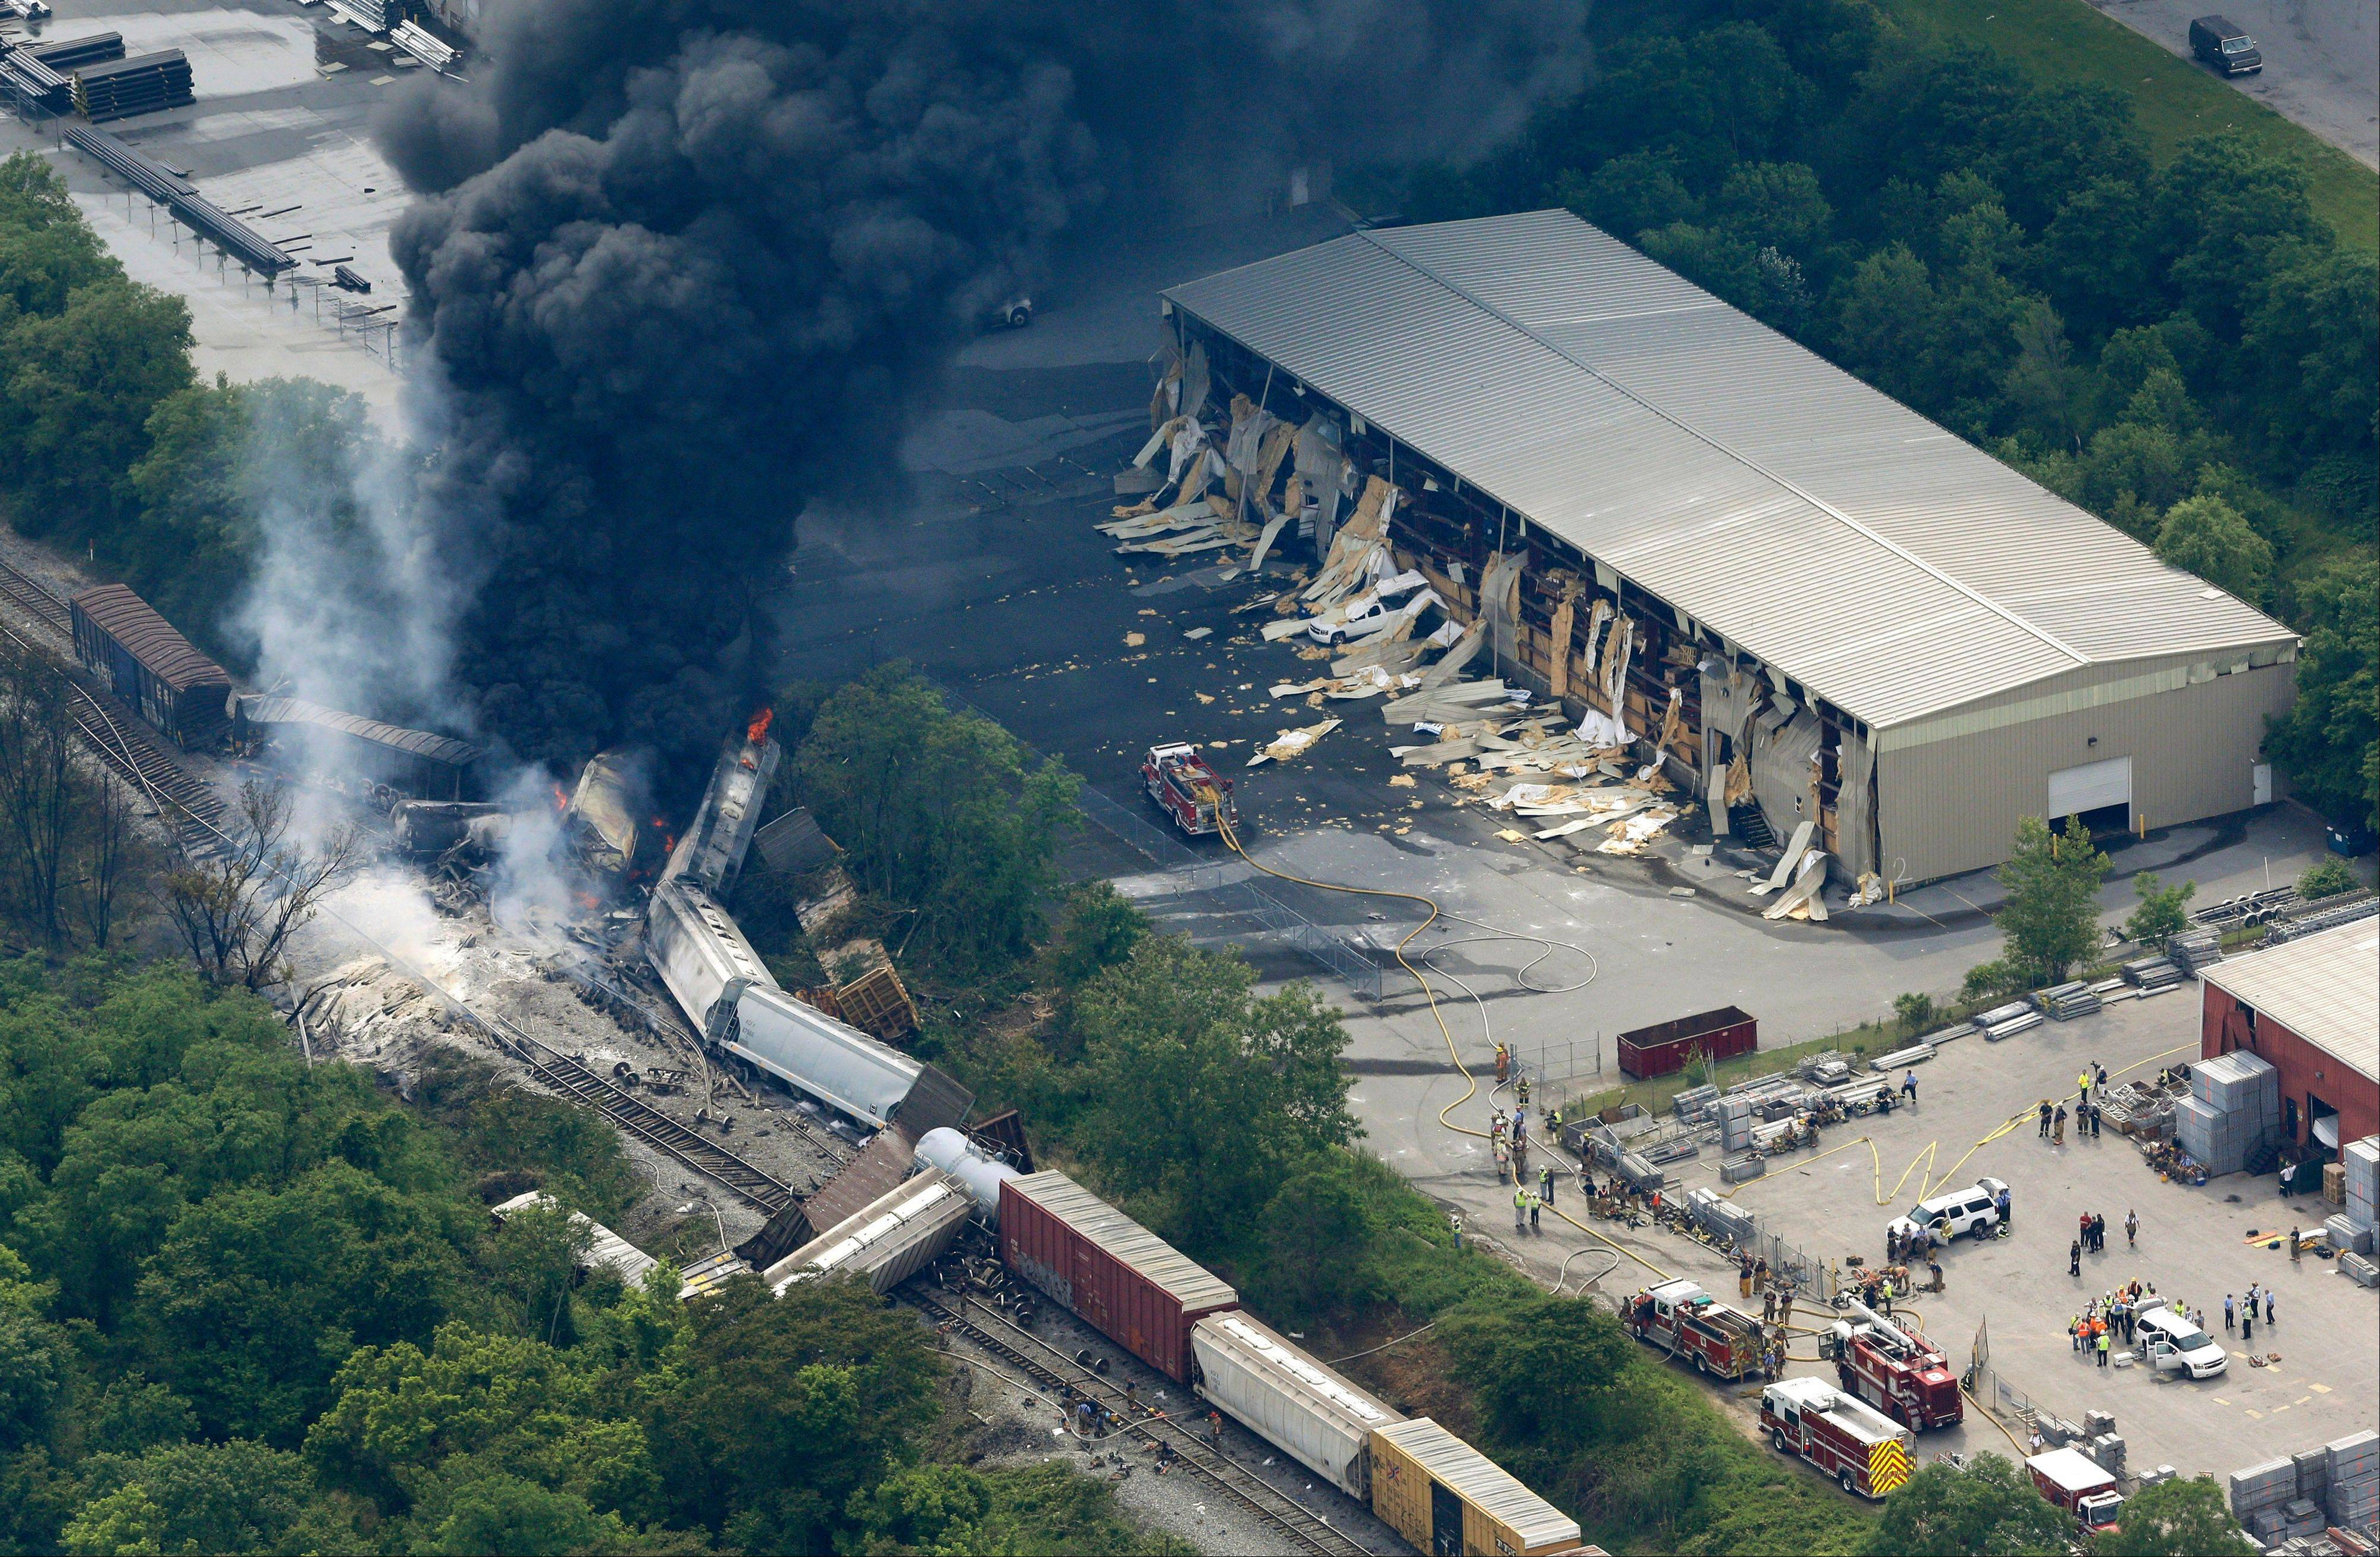 A fire burns at the site of a CSX freight train derailment, Tuesday, May 28, 2013, in Rosedale, Md., where fire officials say the train crashed into a trash truck, causing an explosion that rattled homes at least a half-mile away and collapsed nearby buildings.